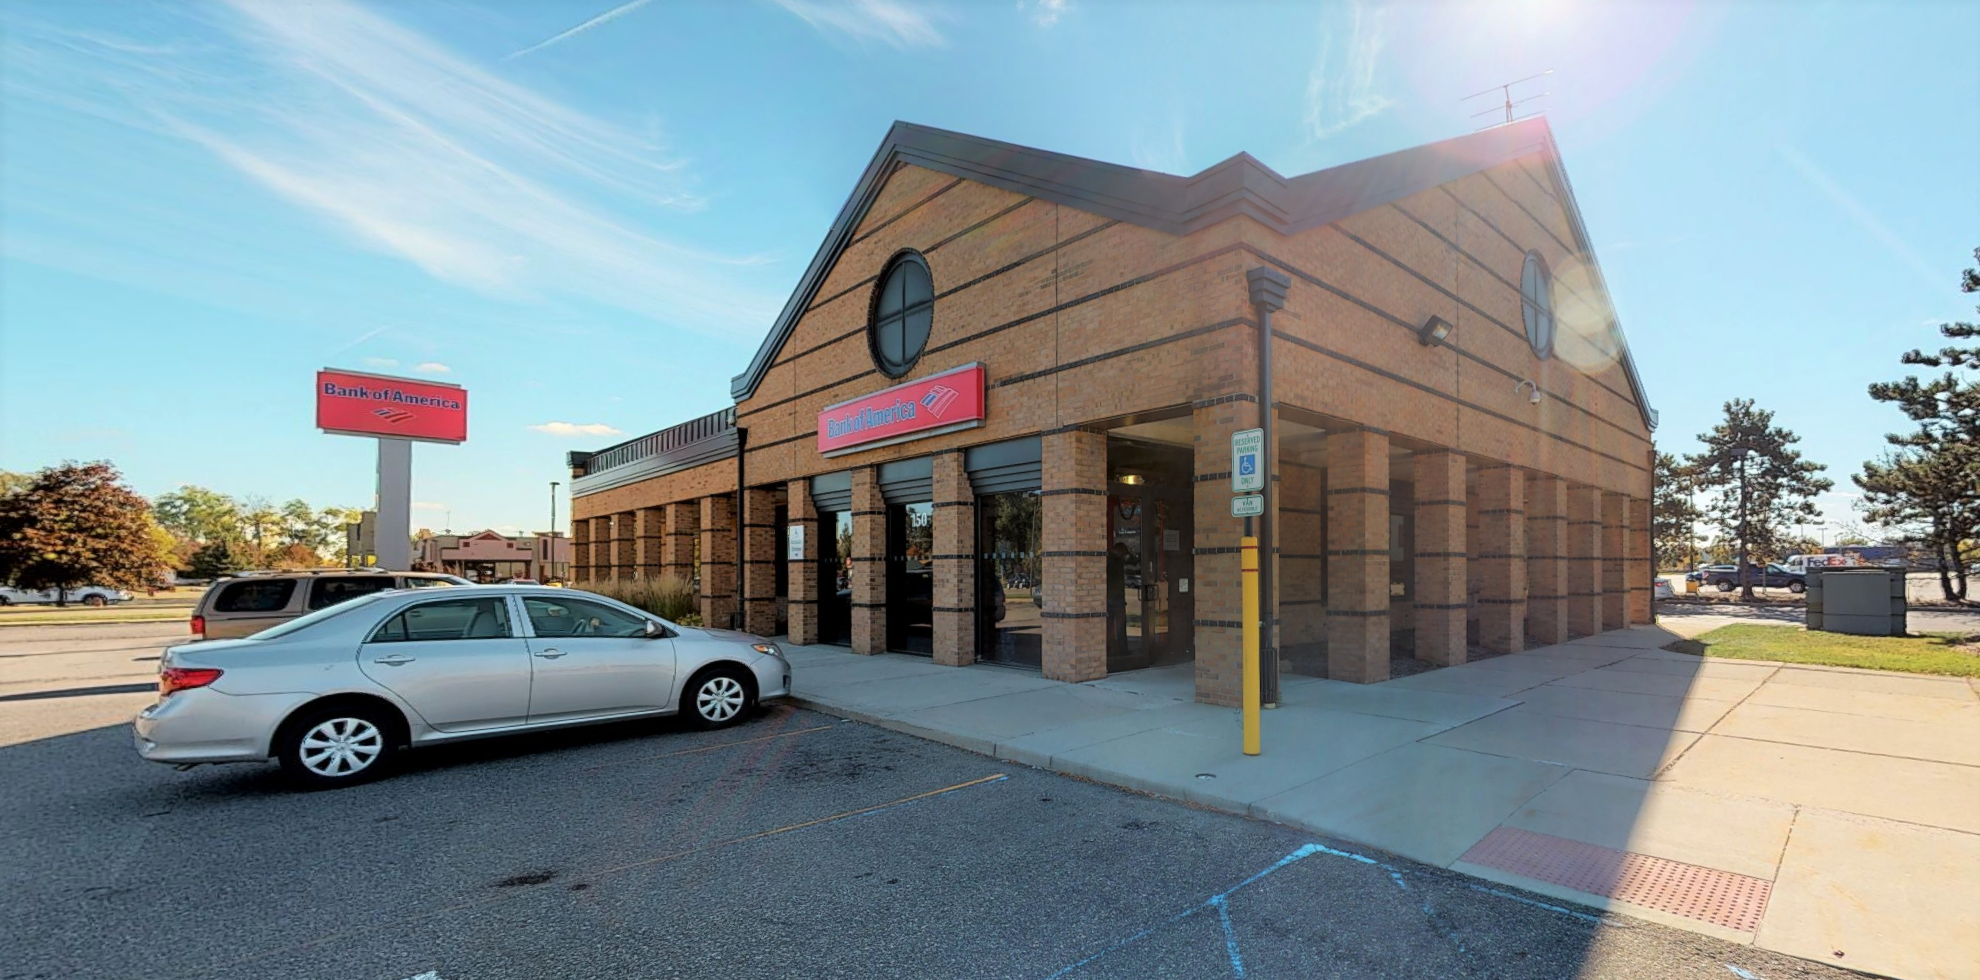 Bank of America financial center with drive-thru ATM | 150 E Maple Rd, Troy, MI 48083